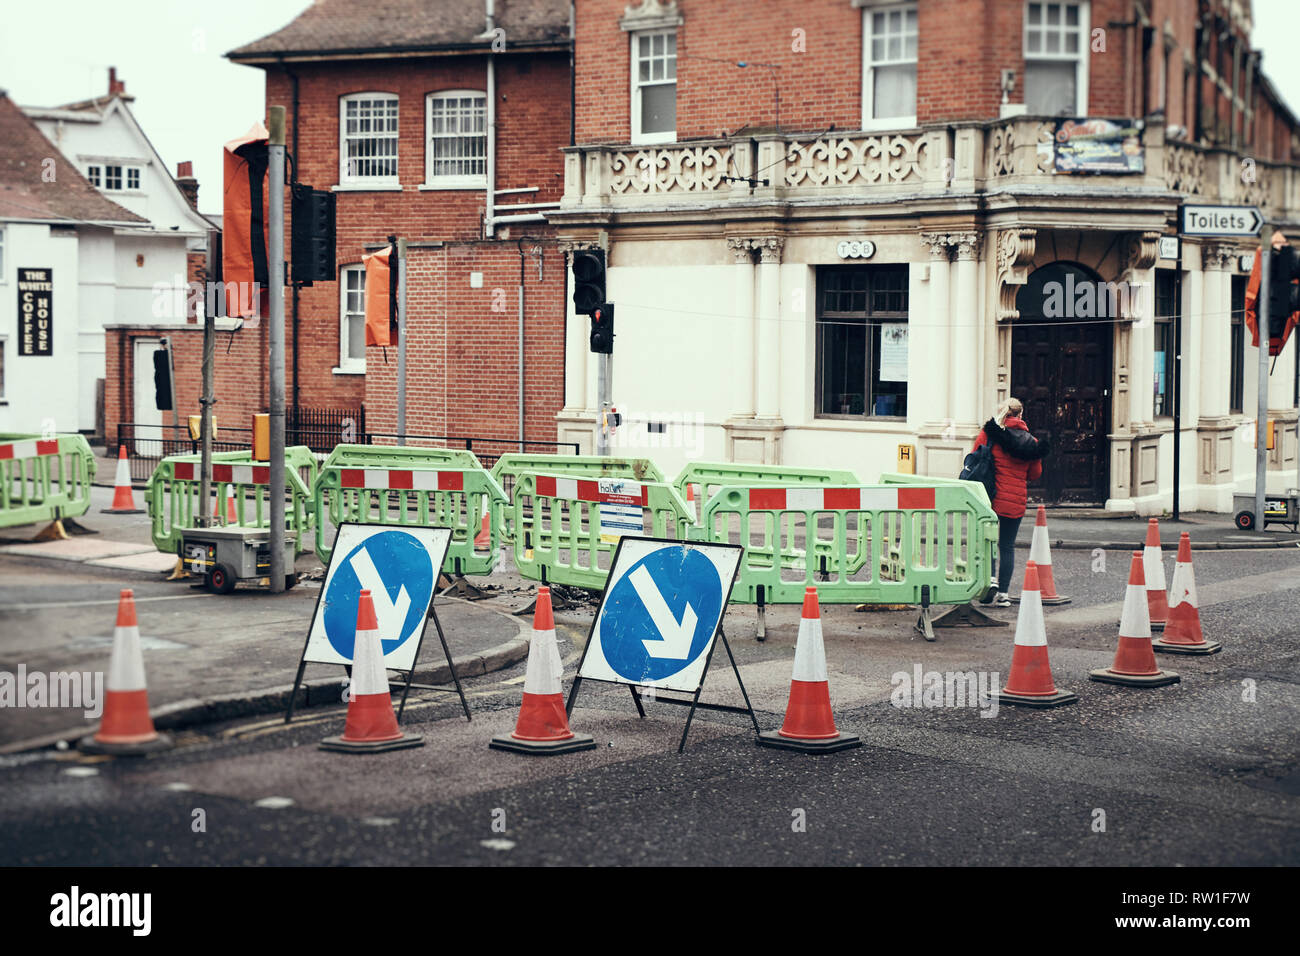 Harwich & Dovercourt, Essex, ENGLAND - March 3, 2019: Roadworks, barriers and cones at the traffic lights in Harwich high street with a woman walking  - Stock Image